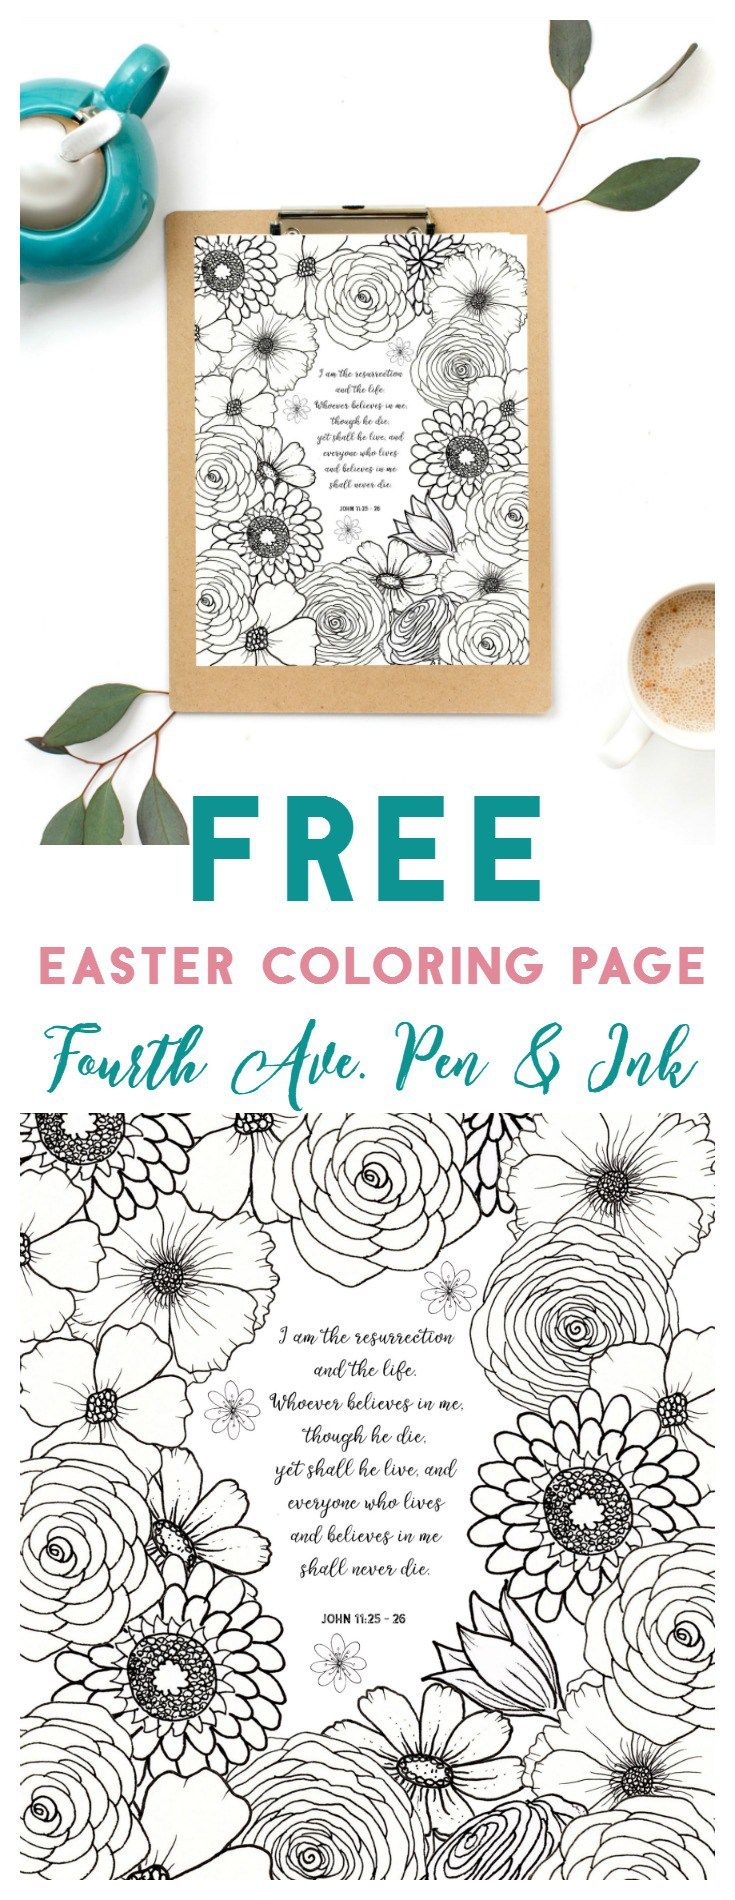 Fourth ave pen u ink free easter coloring page loaded with